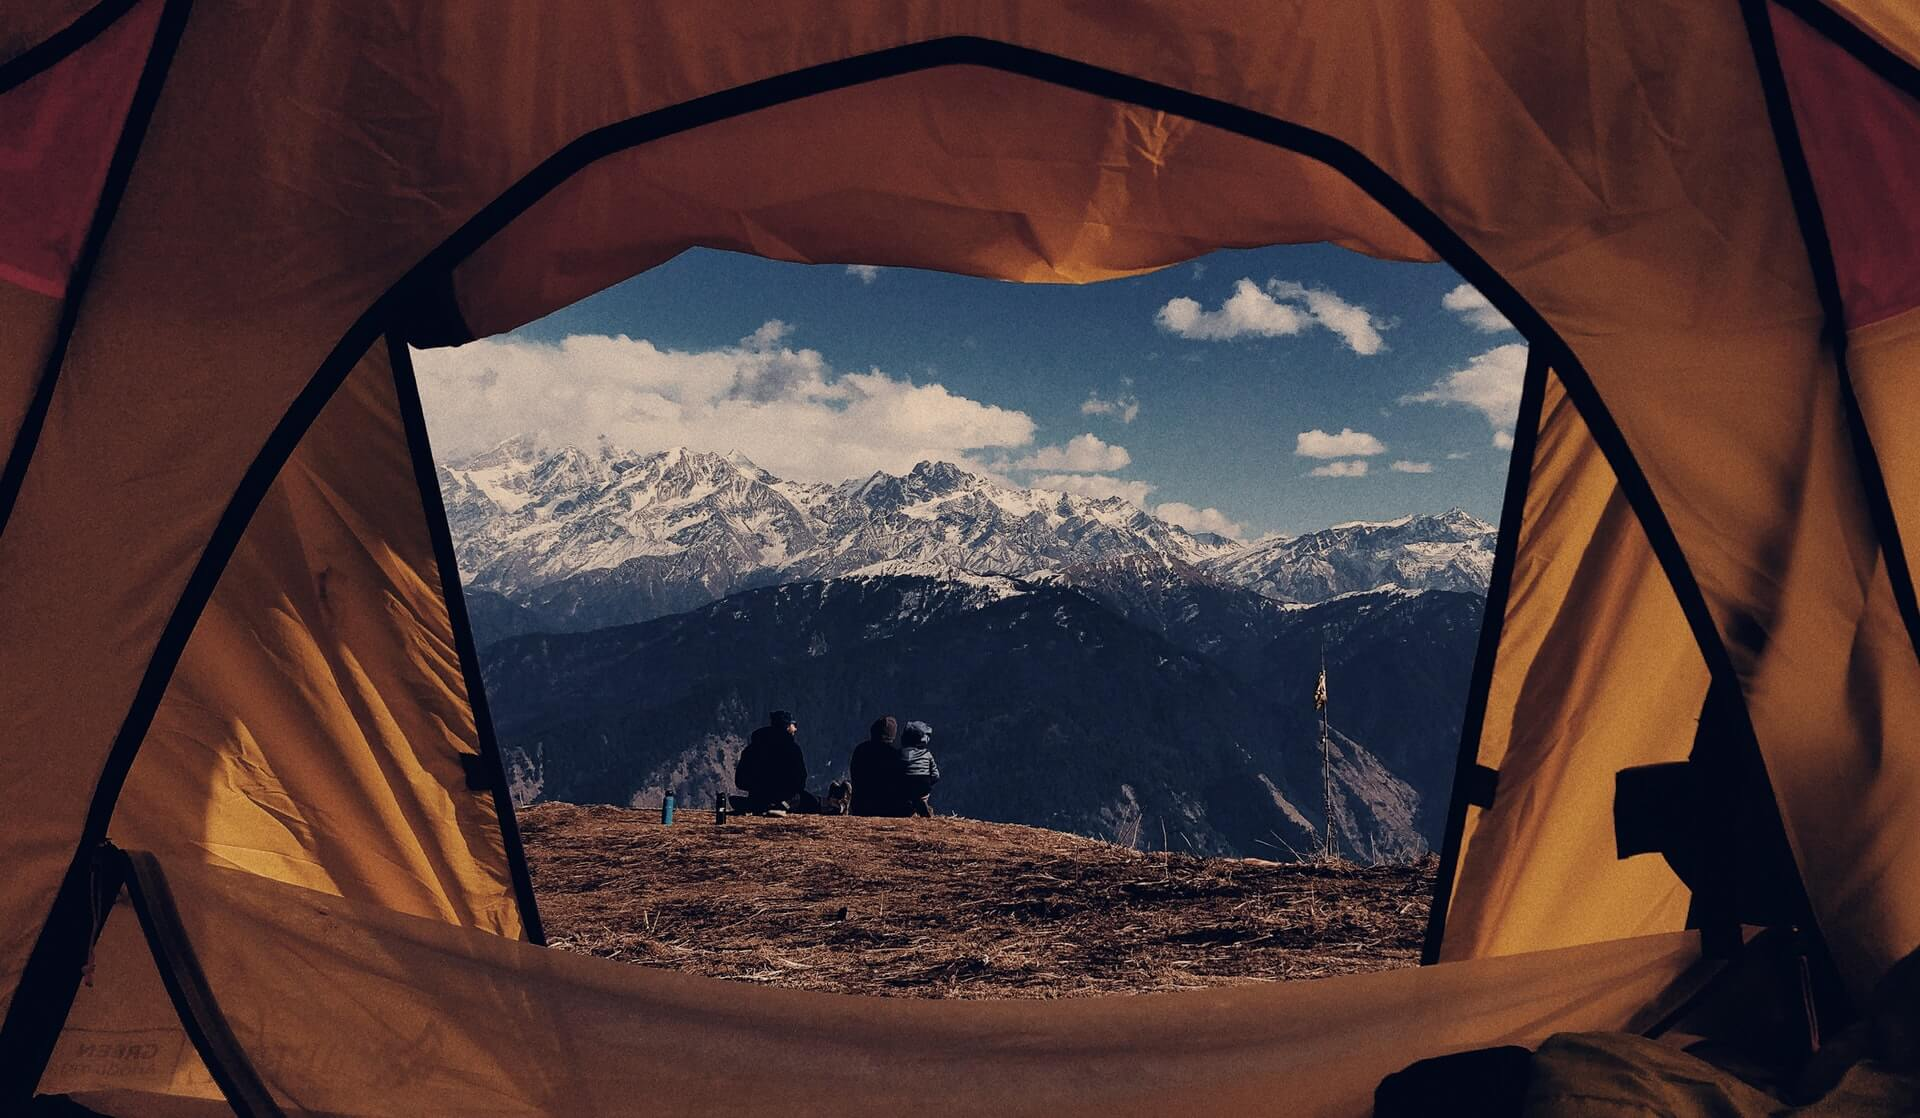 View through the tent flap while camping in the Himalayan mountains